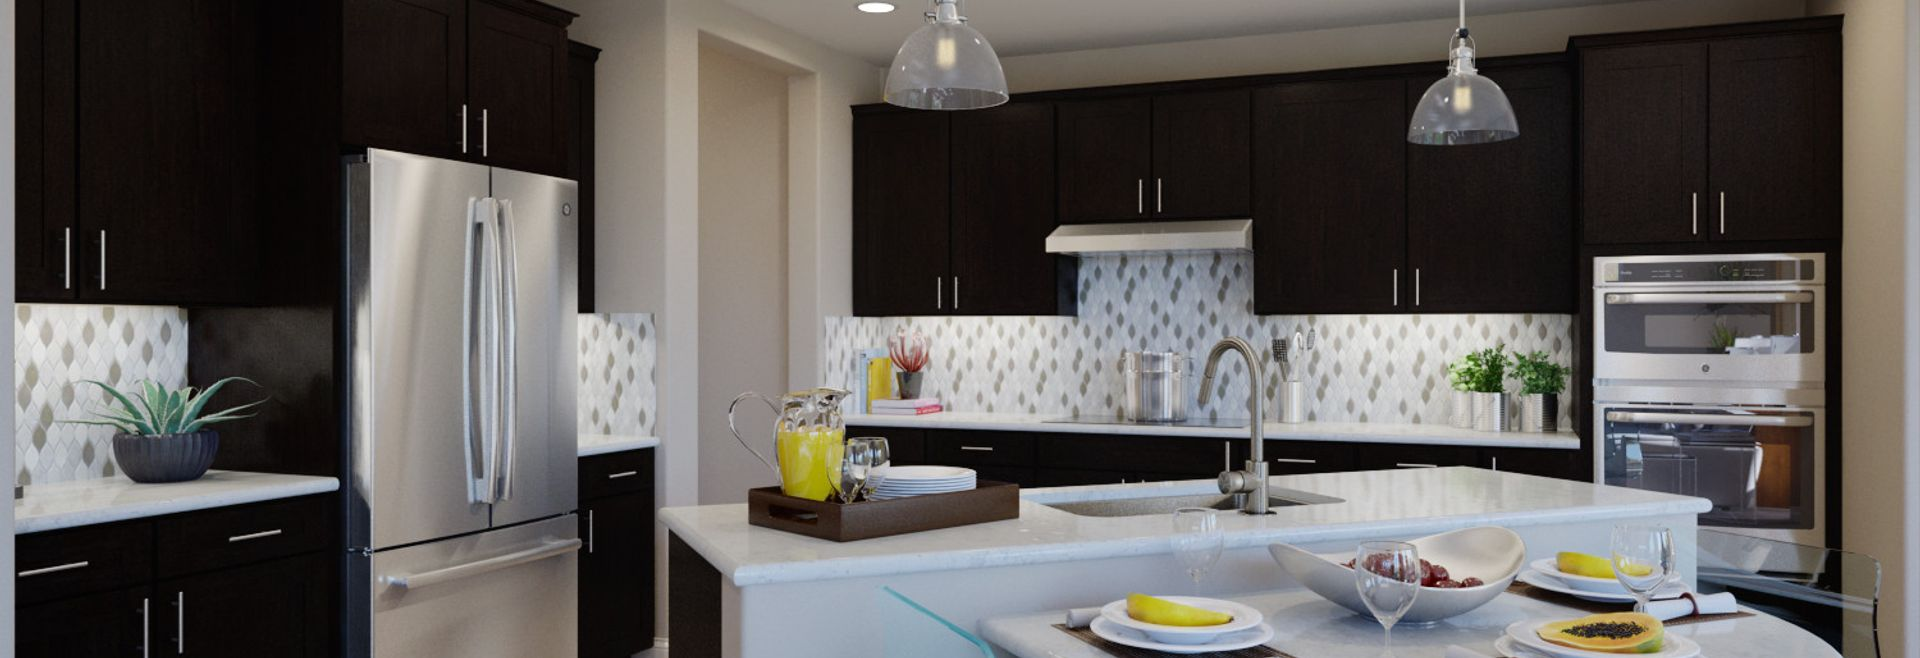 Trilogy Rio Vista Verano Kitchen